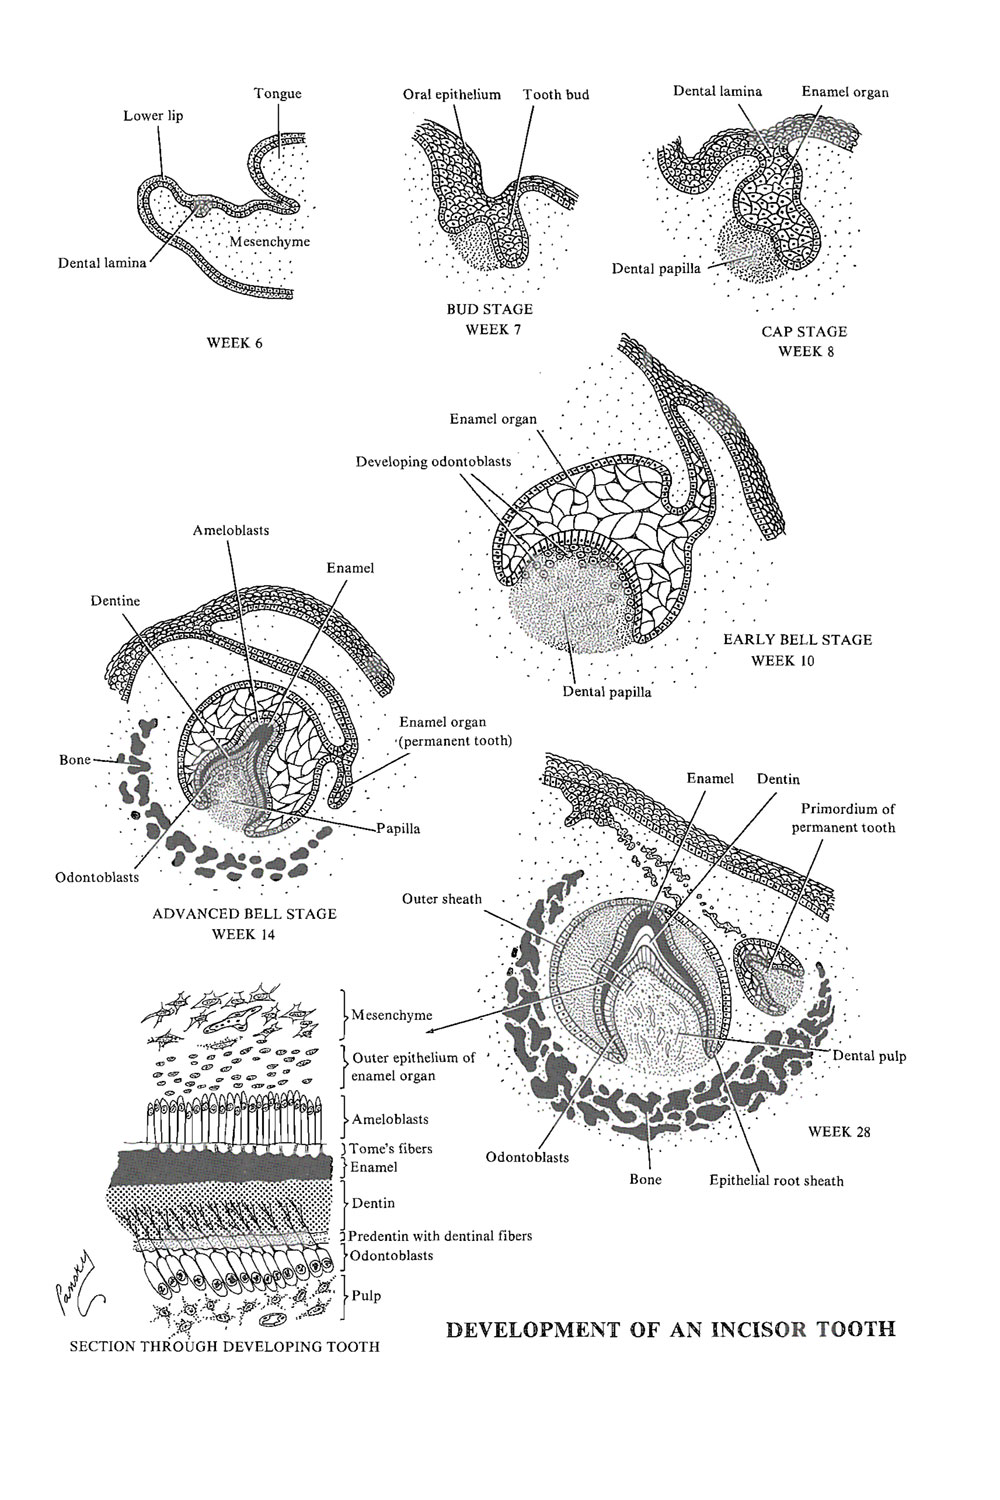 development of the teeth: image #1